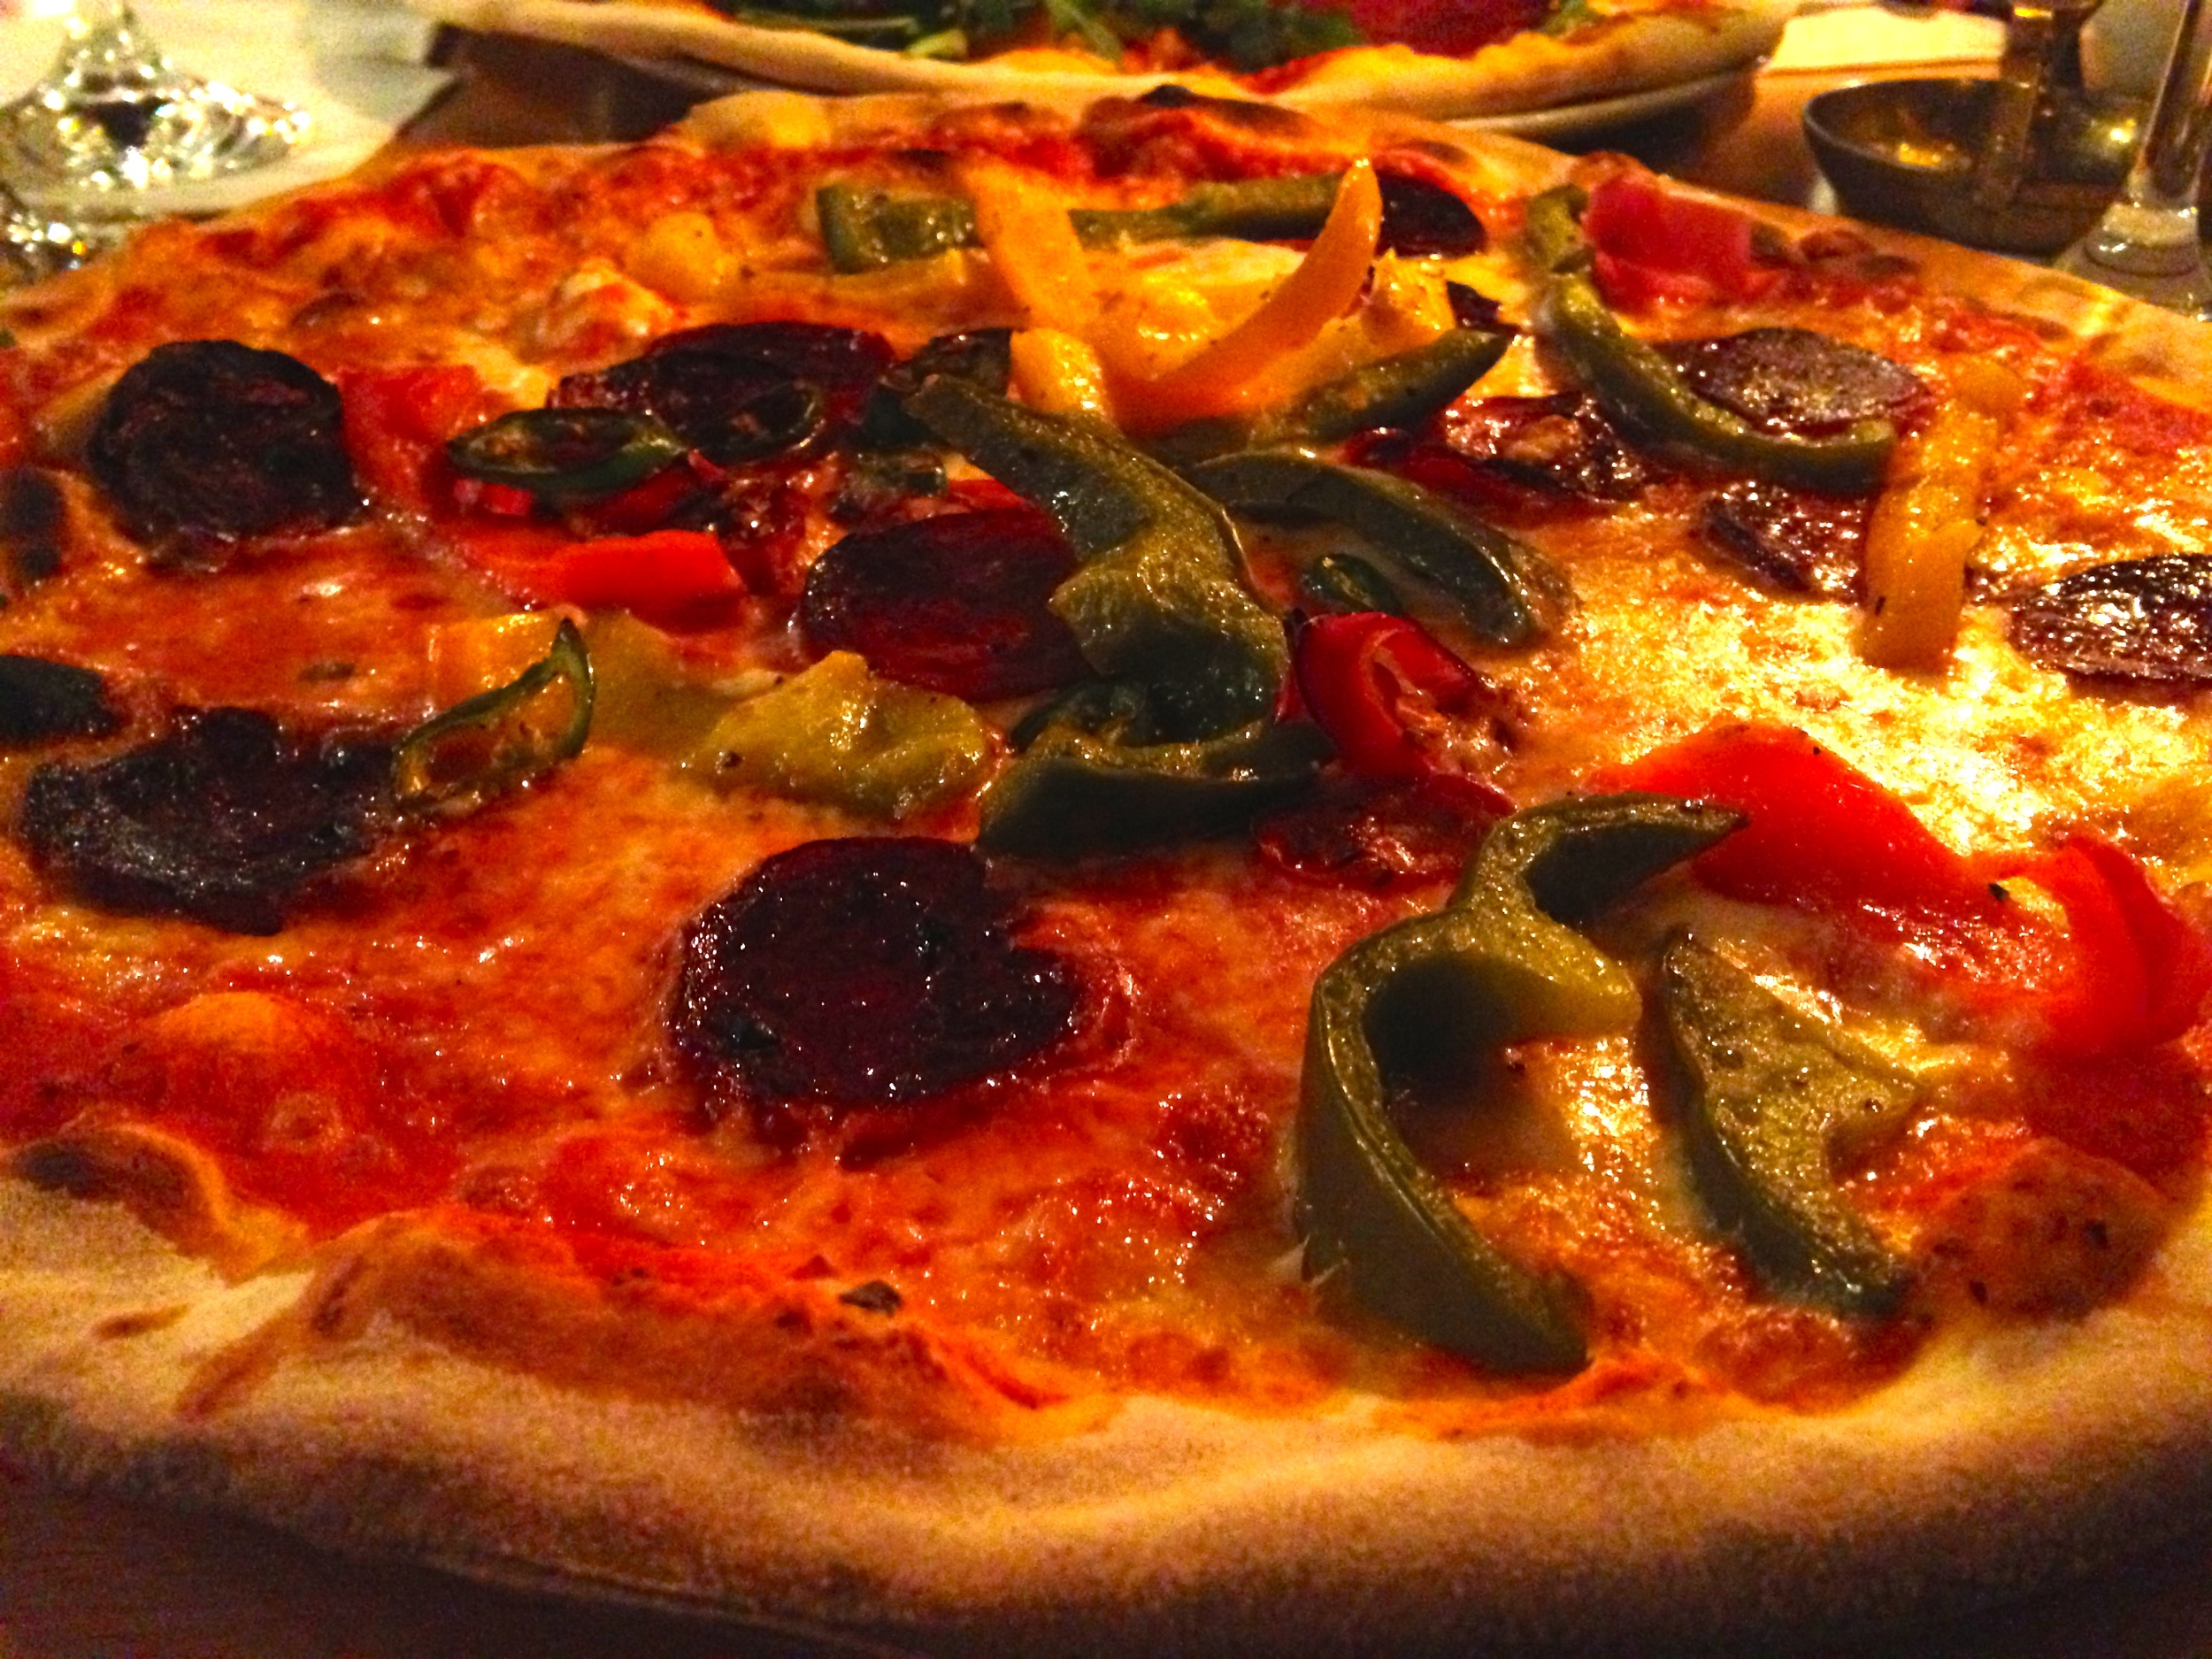 Pizza Judas (salami, peppers, and chillies) at 12 Apostel